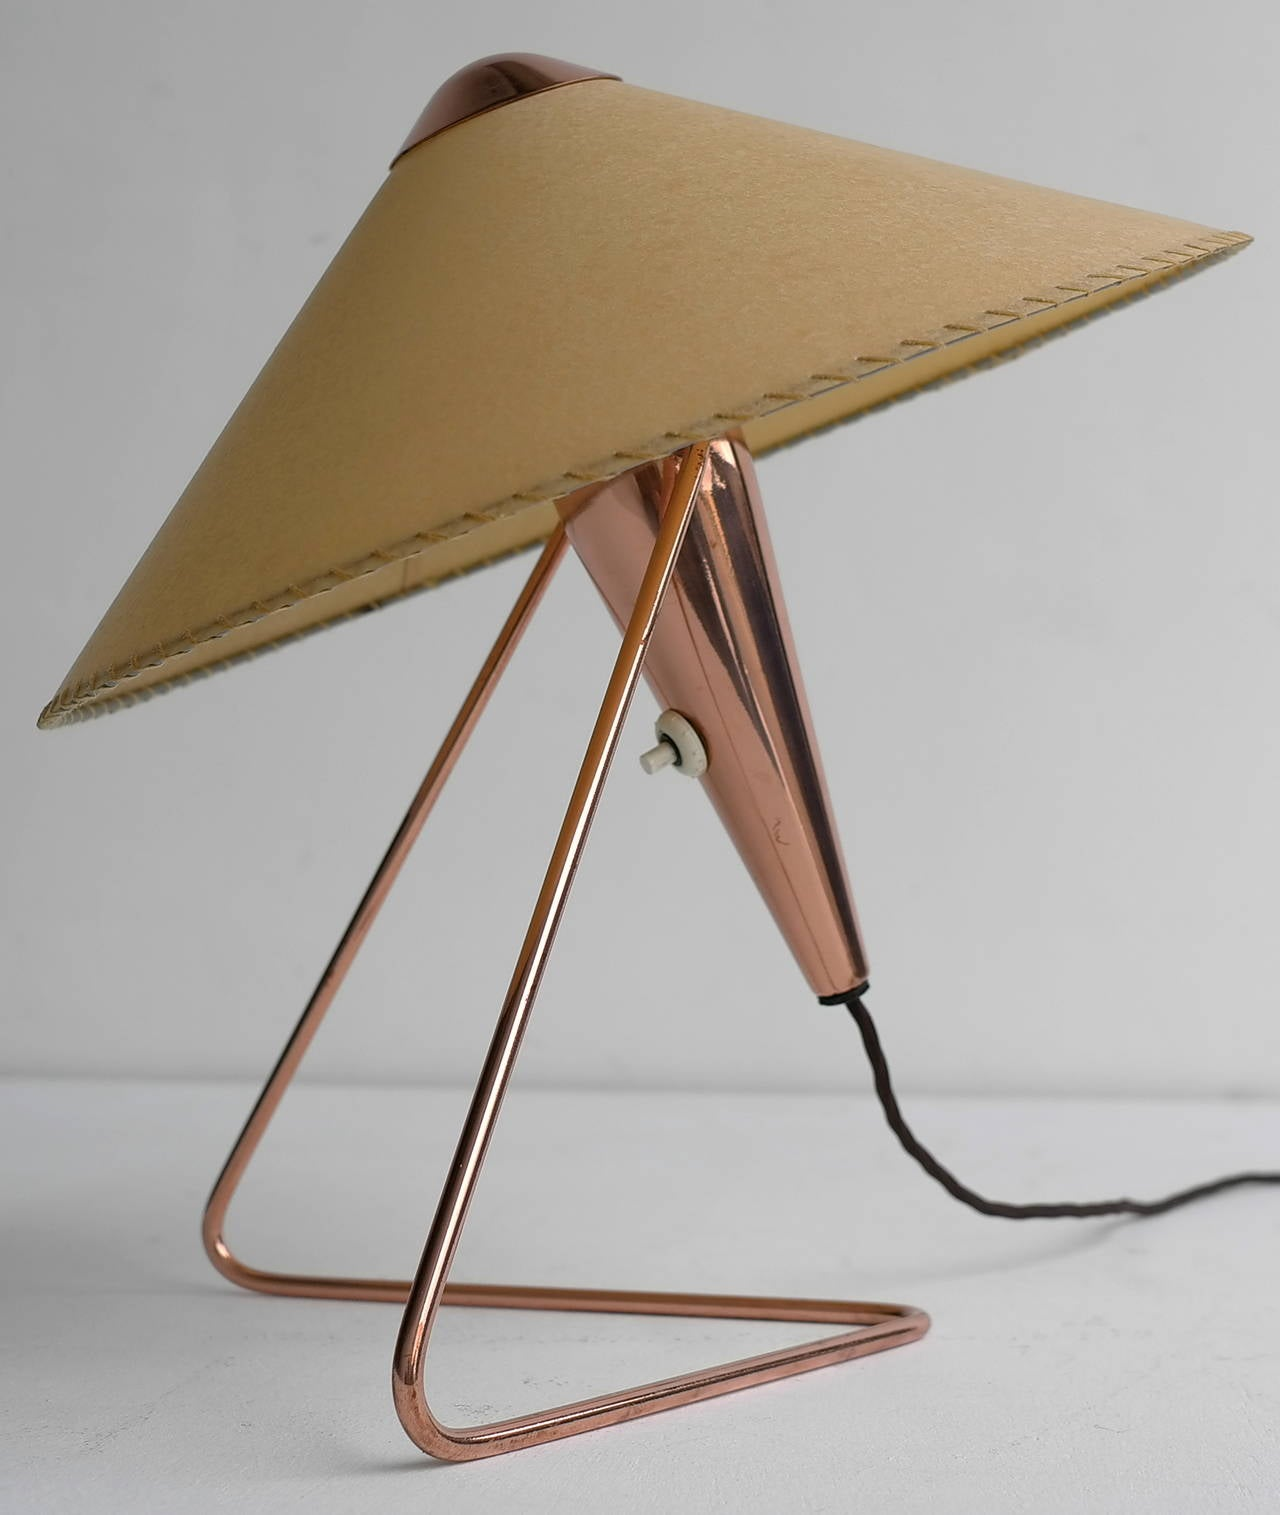 V-Shaped Copper Table Lamp, 1950s In Excellent Condition For Sale In The Hague, NL